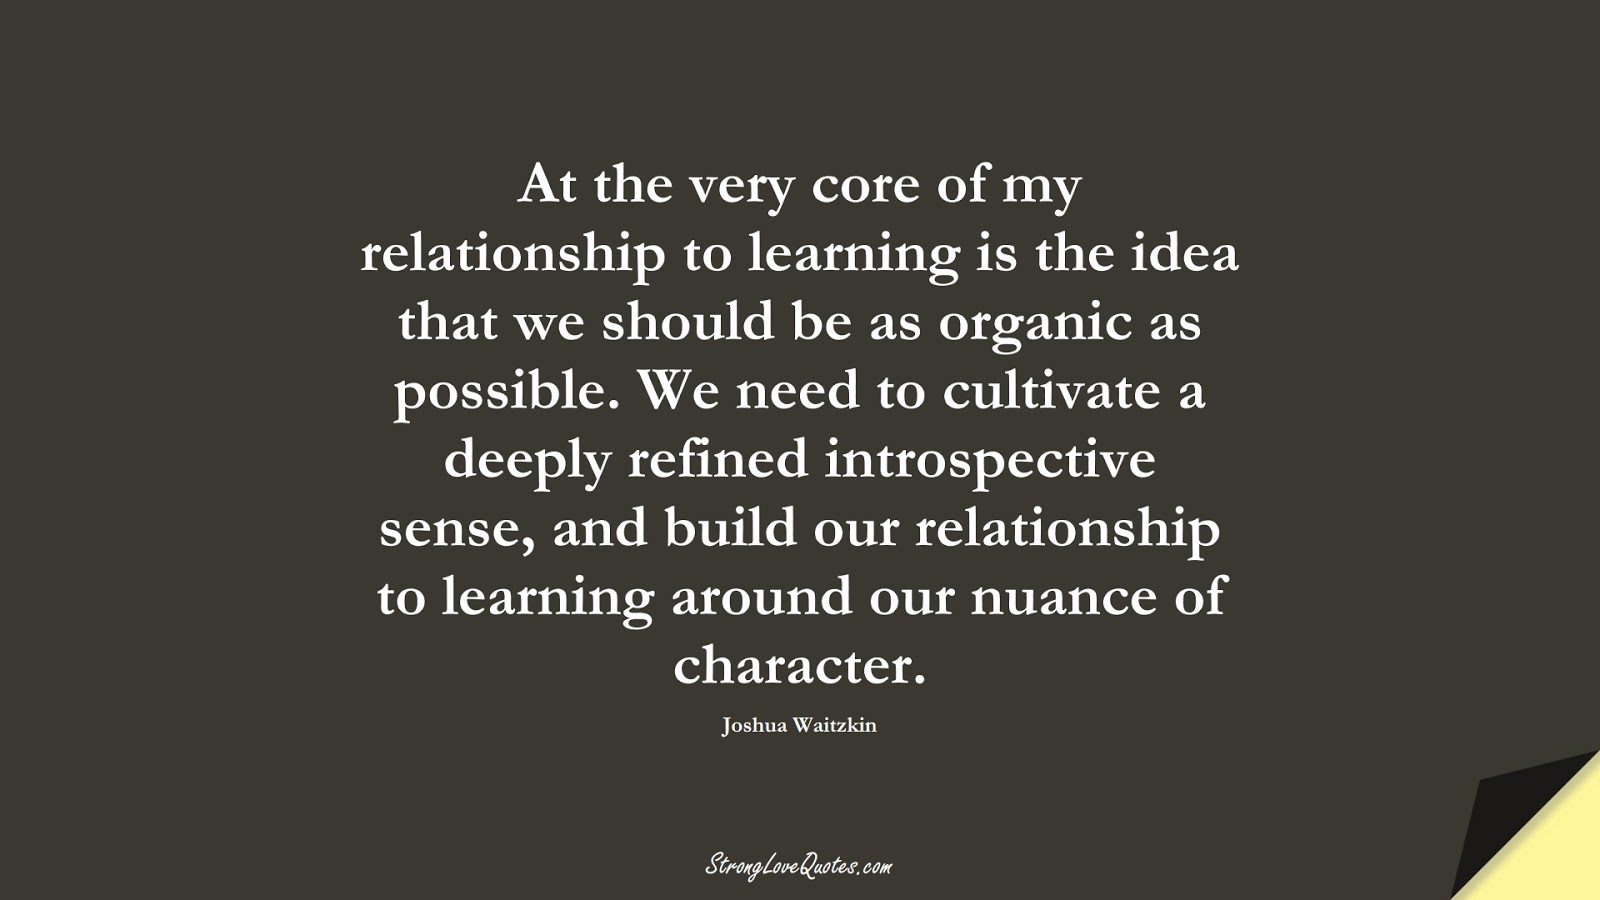 At the very core of my relationship to learning is the idea that we should be as organic as possible. We need to cultivate a deeply refined introspective sense, and build our relationship to learning around our nuance of character. (Joshua Waitzkin);  #EducationQuotes